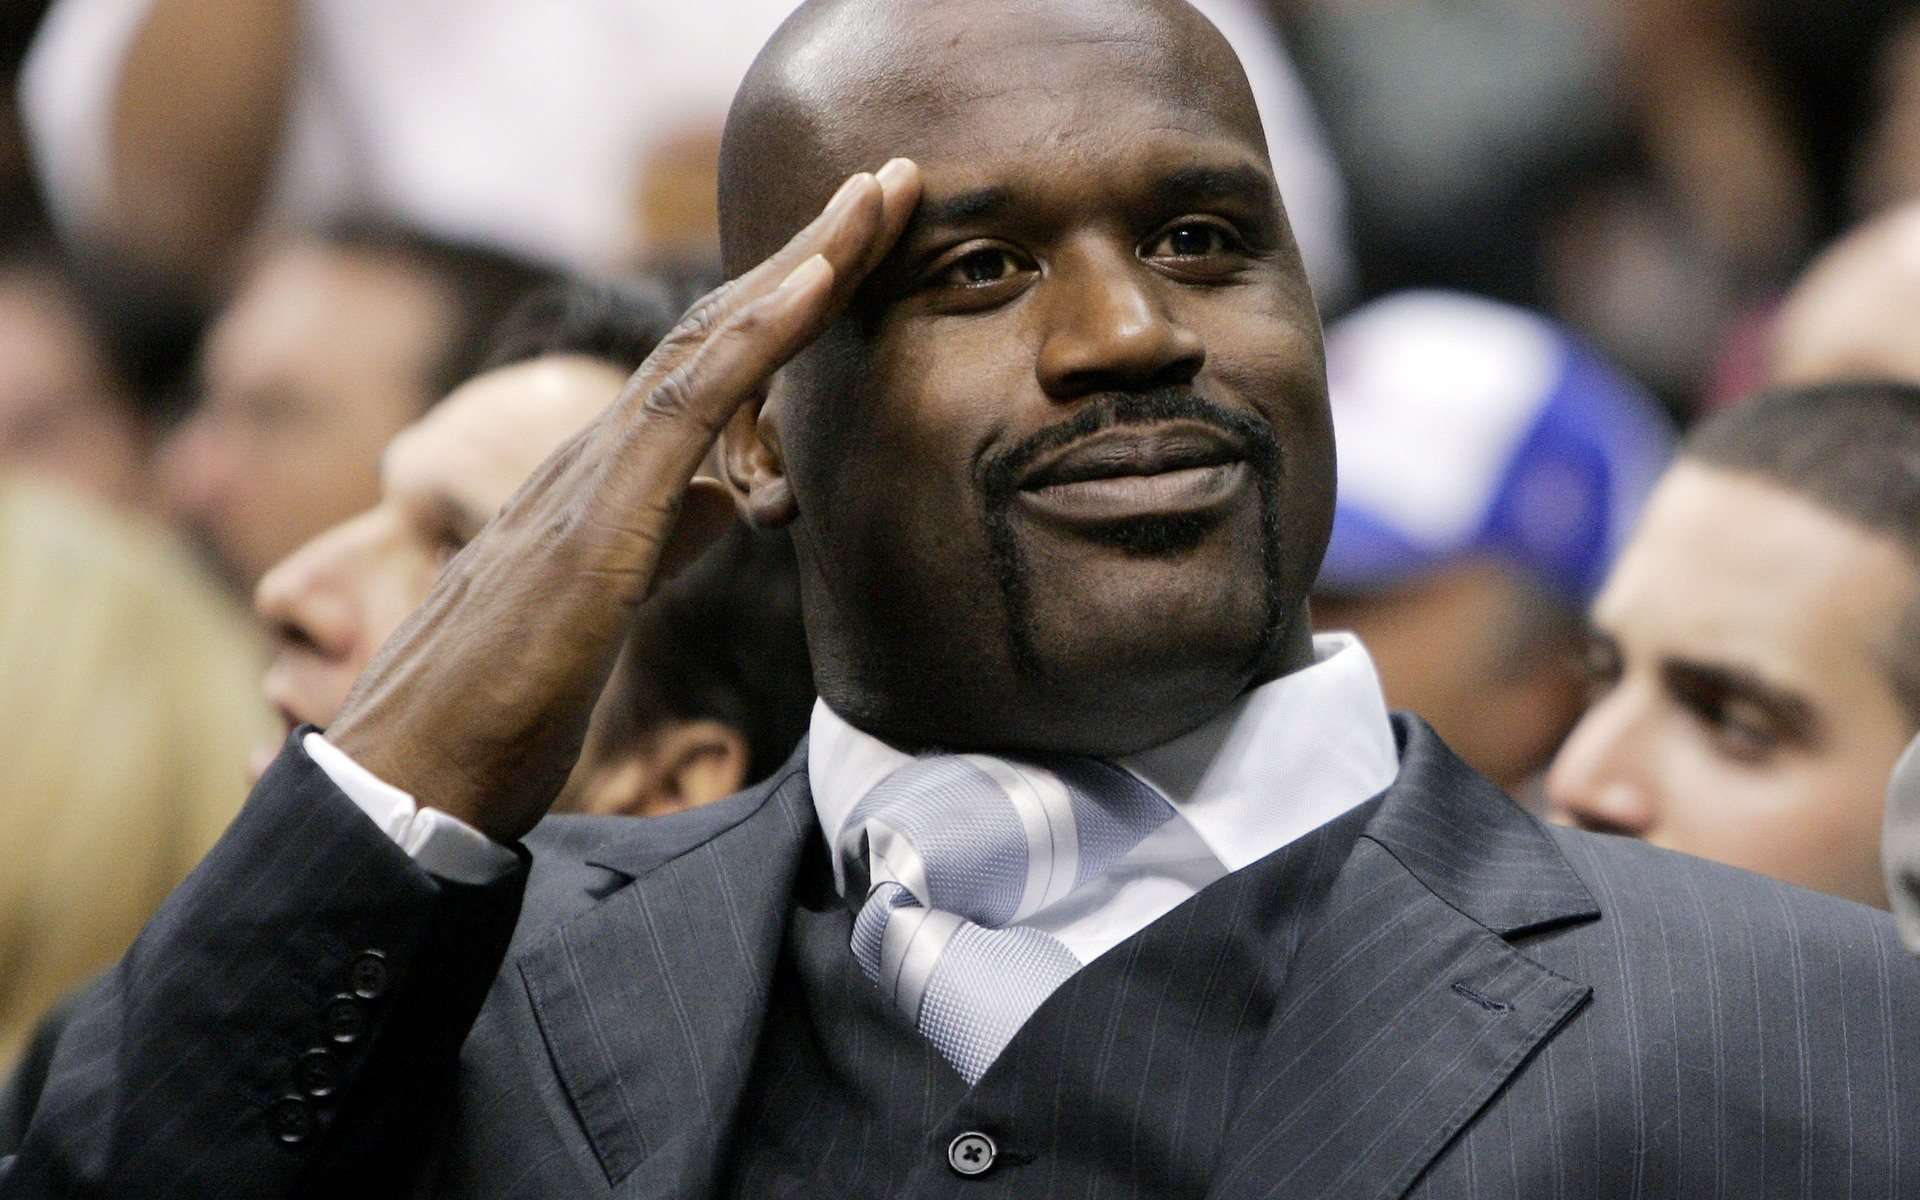 SHAQUILLE O'NEAL PARTNERS WITH SOFTWARE COMPANY TIP SOLUTIONS TO REVOLUTIONIZE THE WAY CONSUMERS RESPOND TO A PHONE CALL WITH CALLSNAPTM APP UPGRADE AND MORE